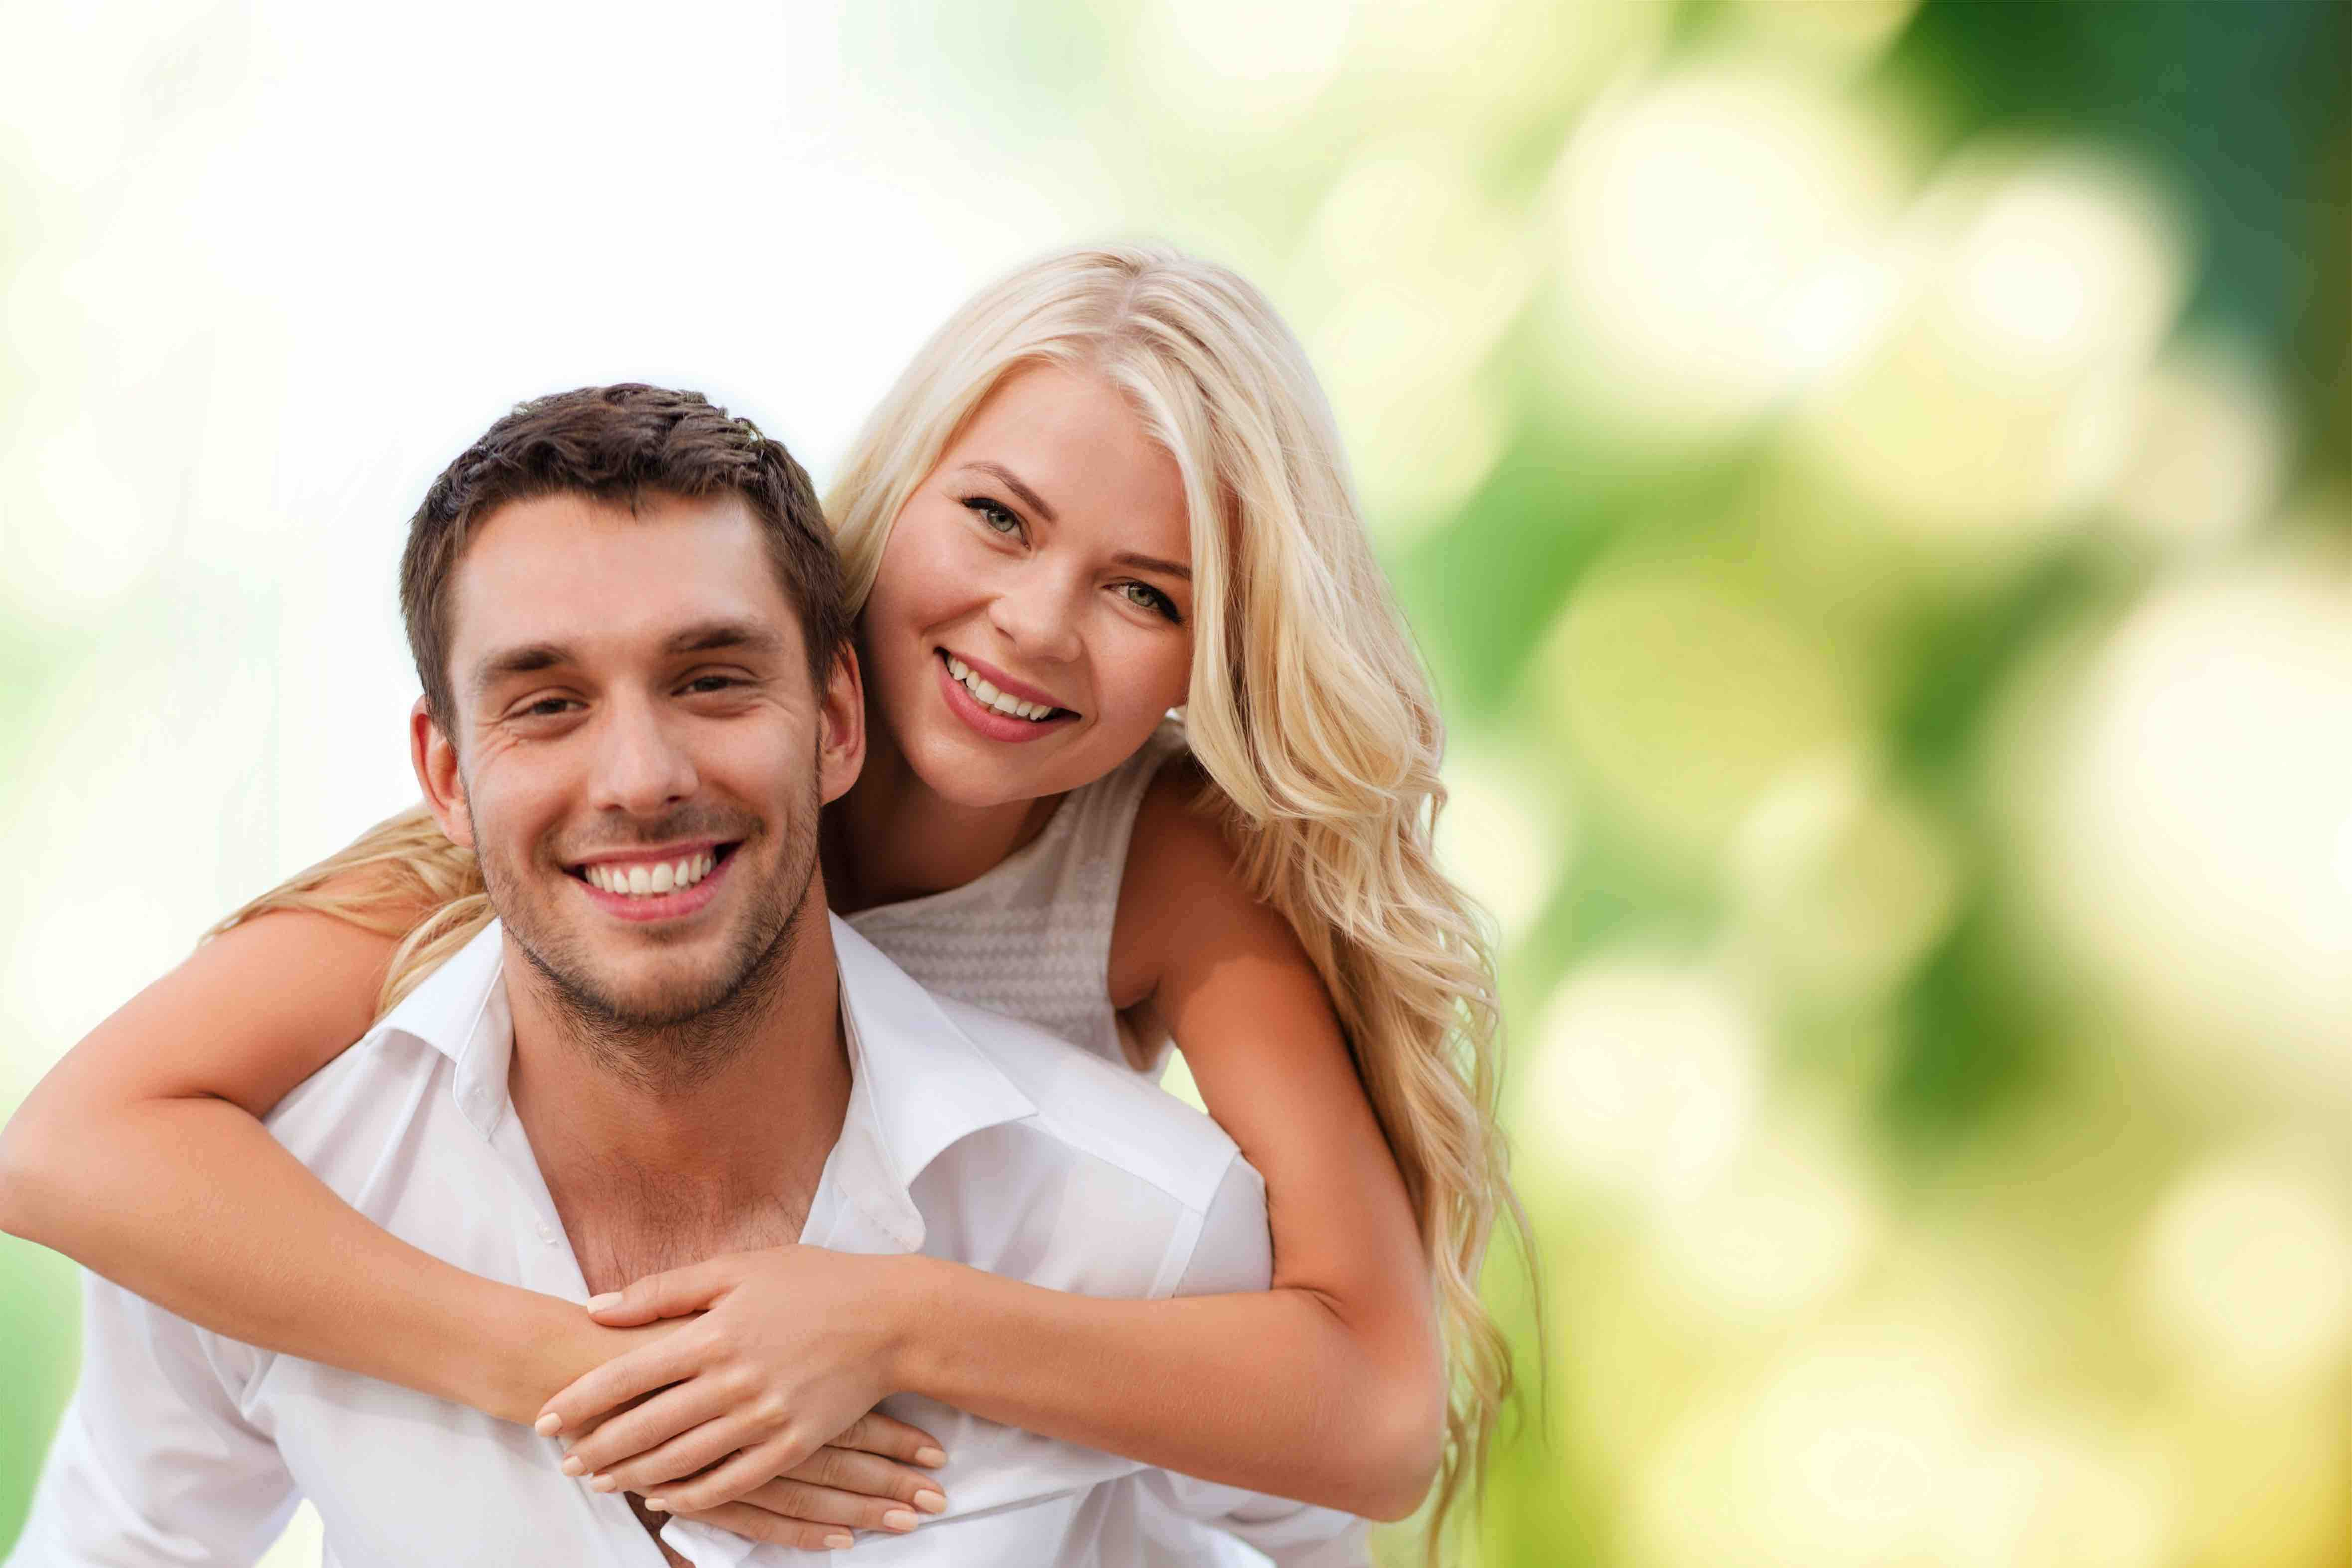 Young Couple Smiling With Dental Implants in Birmingham Alabama